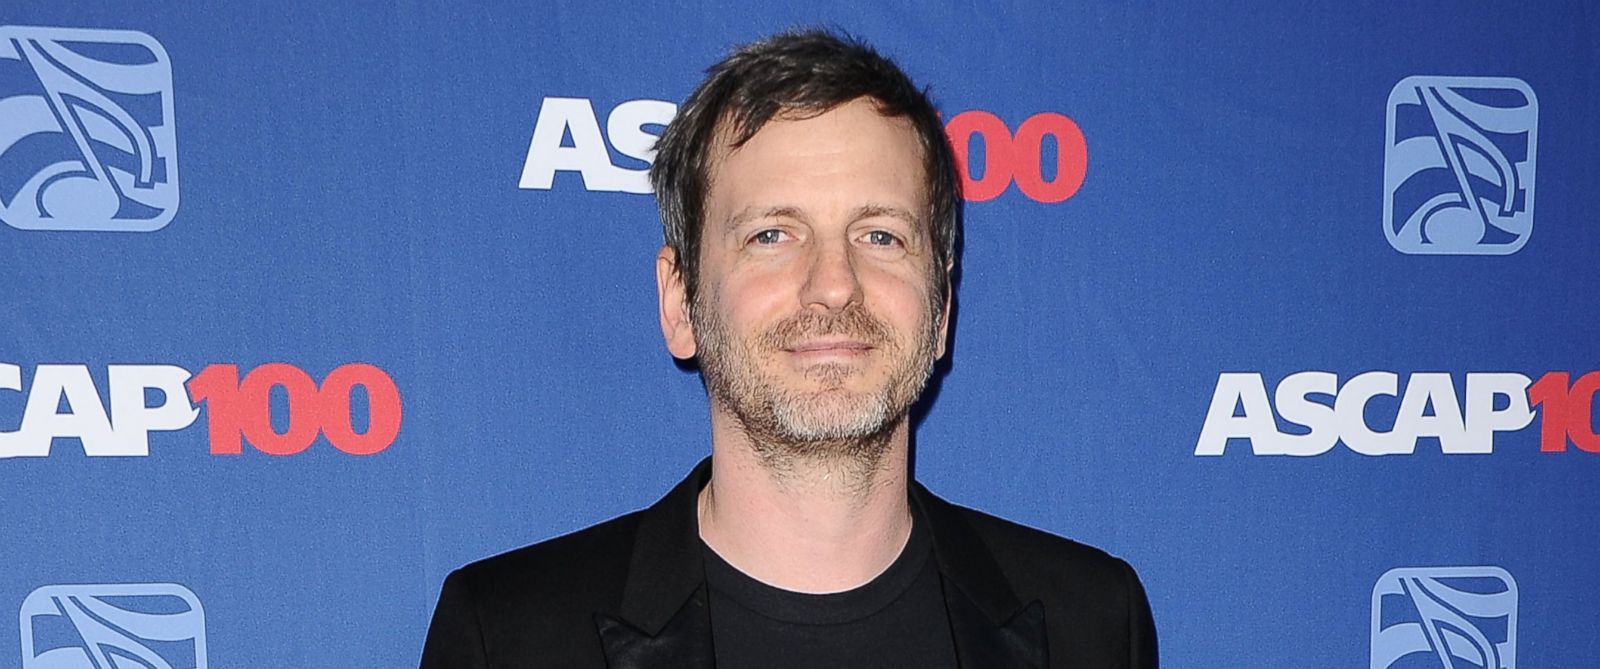 PHOTO: Producer Dr. Luke attends the 31st annual ASCAP Pop Music Awards on April 23, 2014 in Hollywood, Calif.